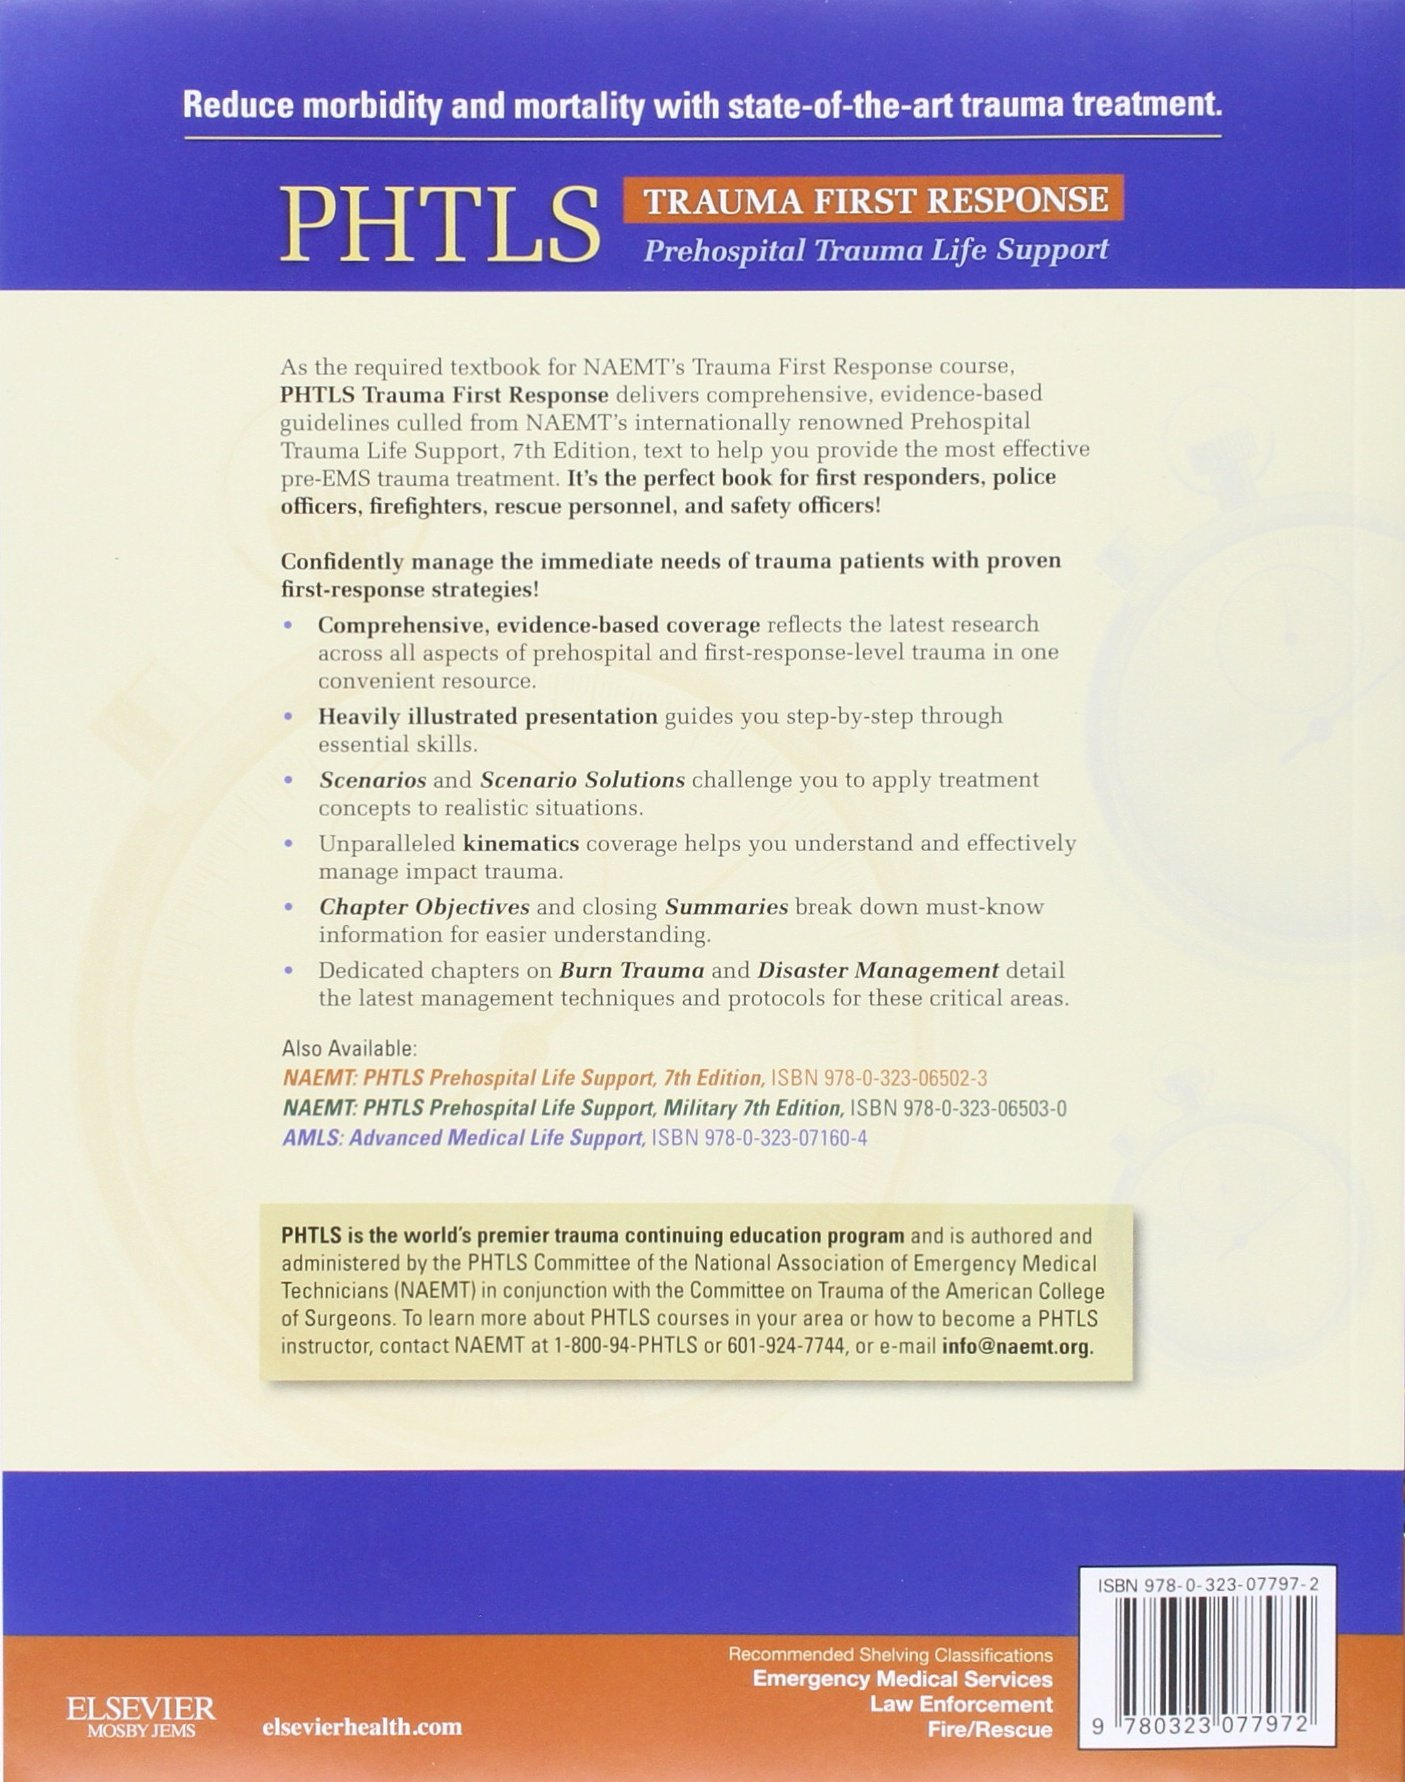 Buy PHTLS Trauma First Response Book Online at Low Prices in India